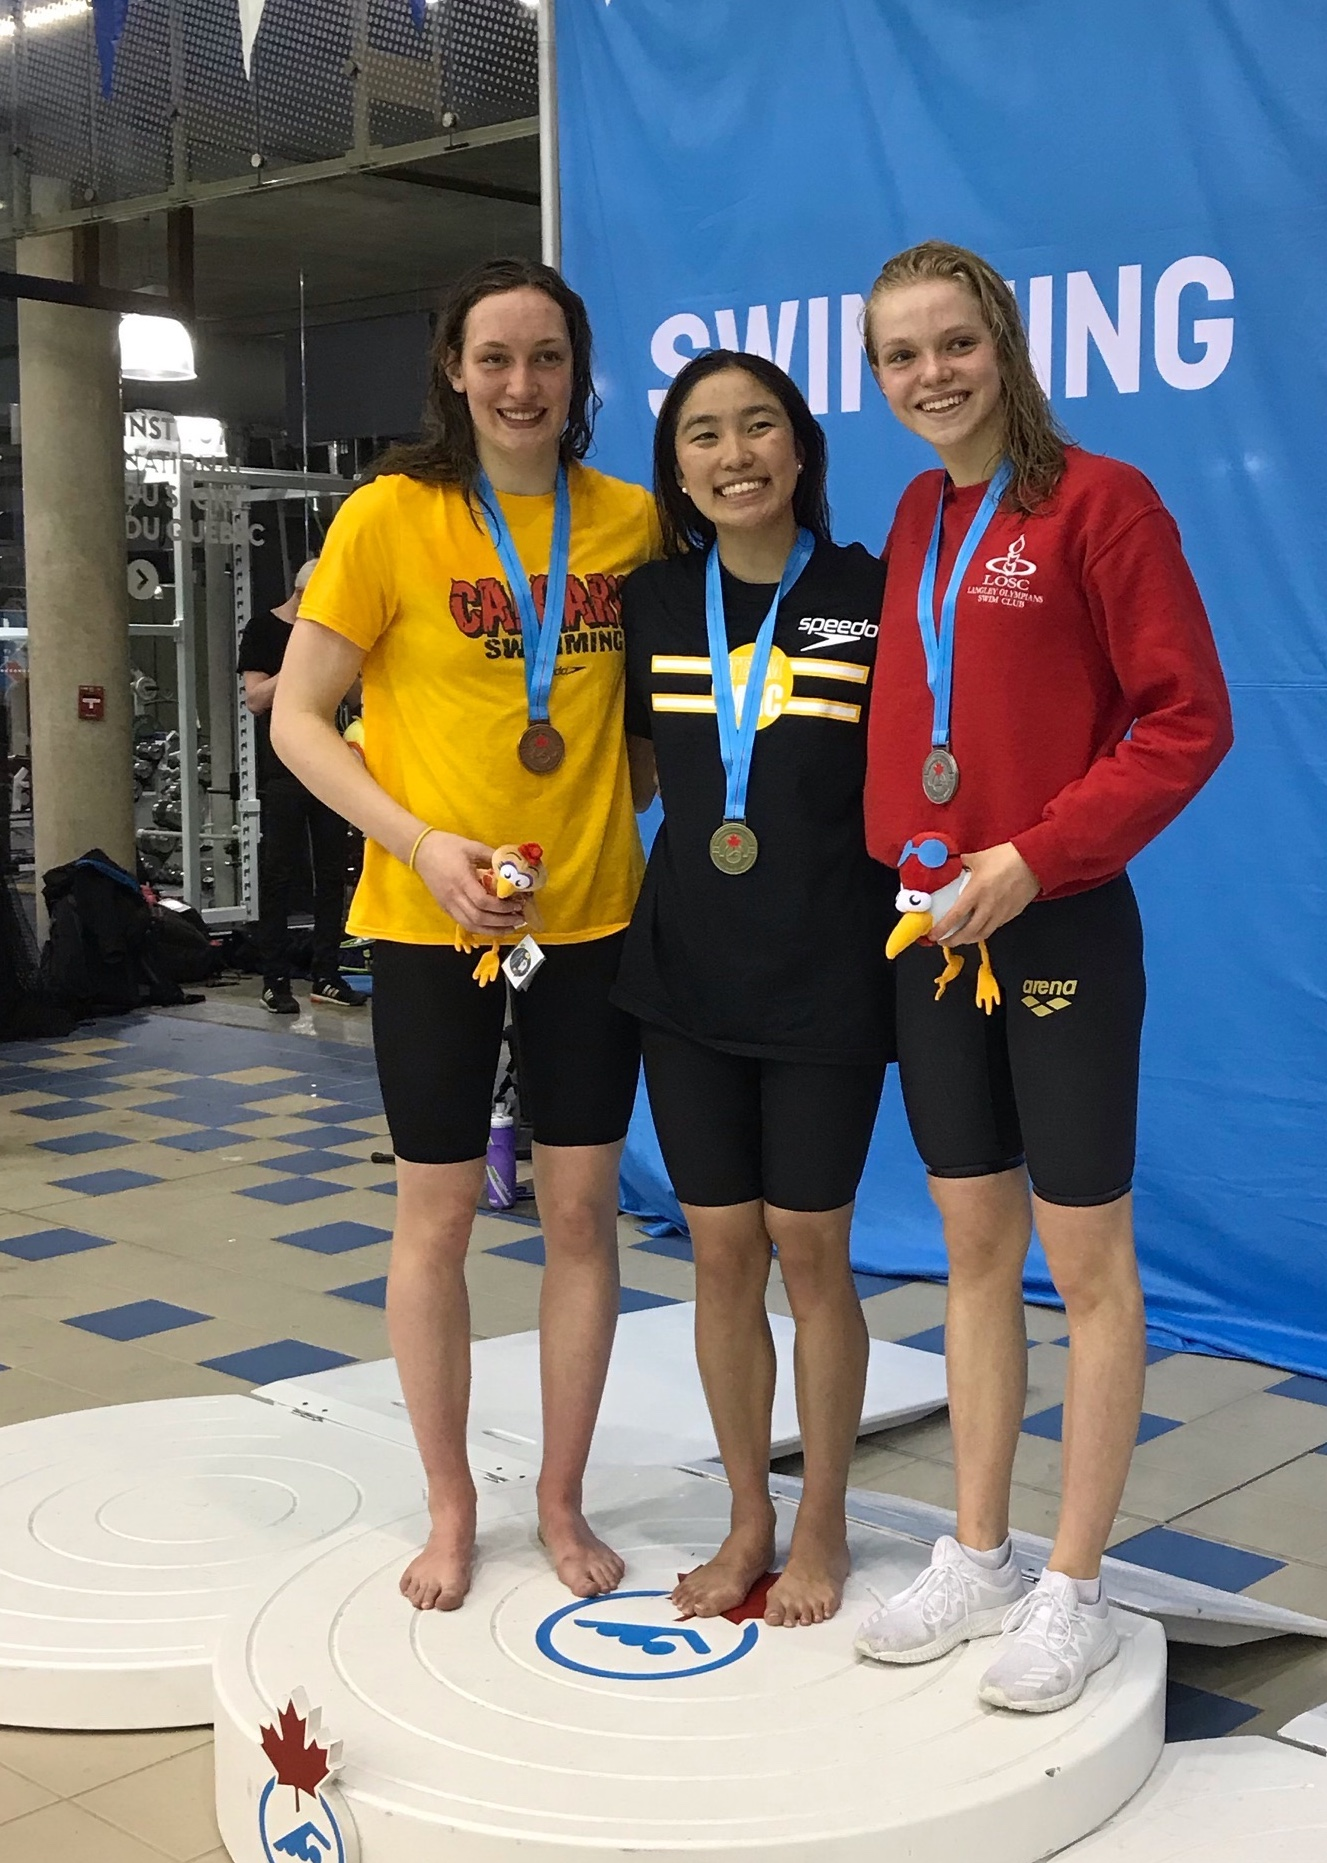 Bailey Herbert (LOSC), on right, with her W400IM silver medal